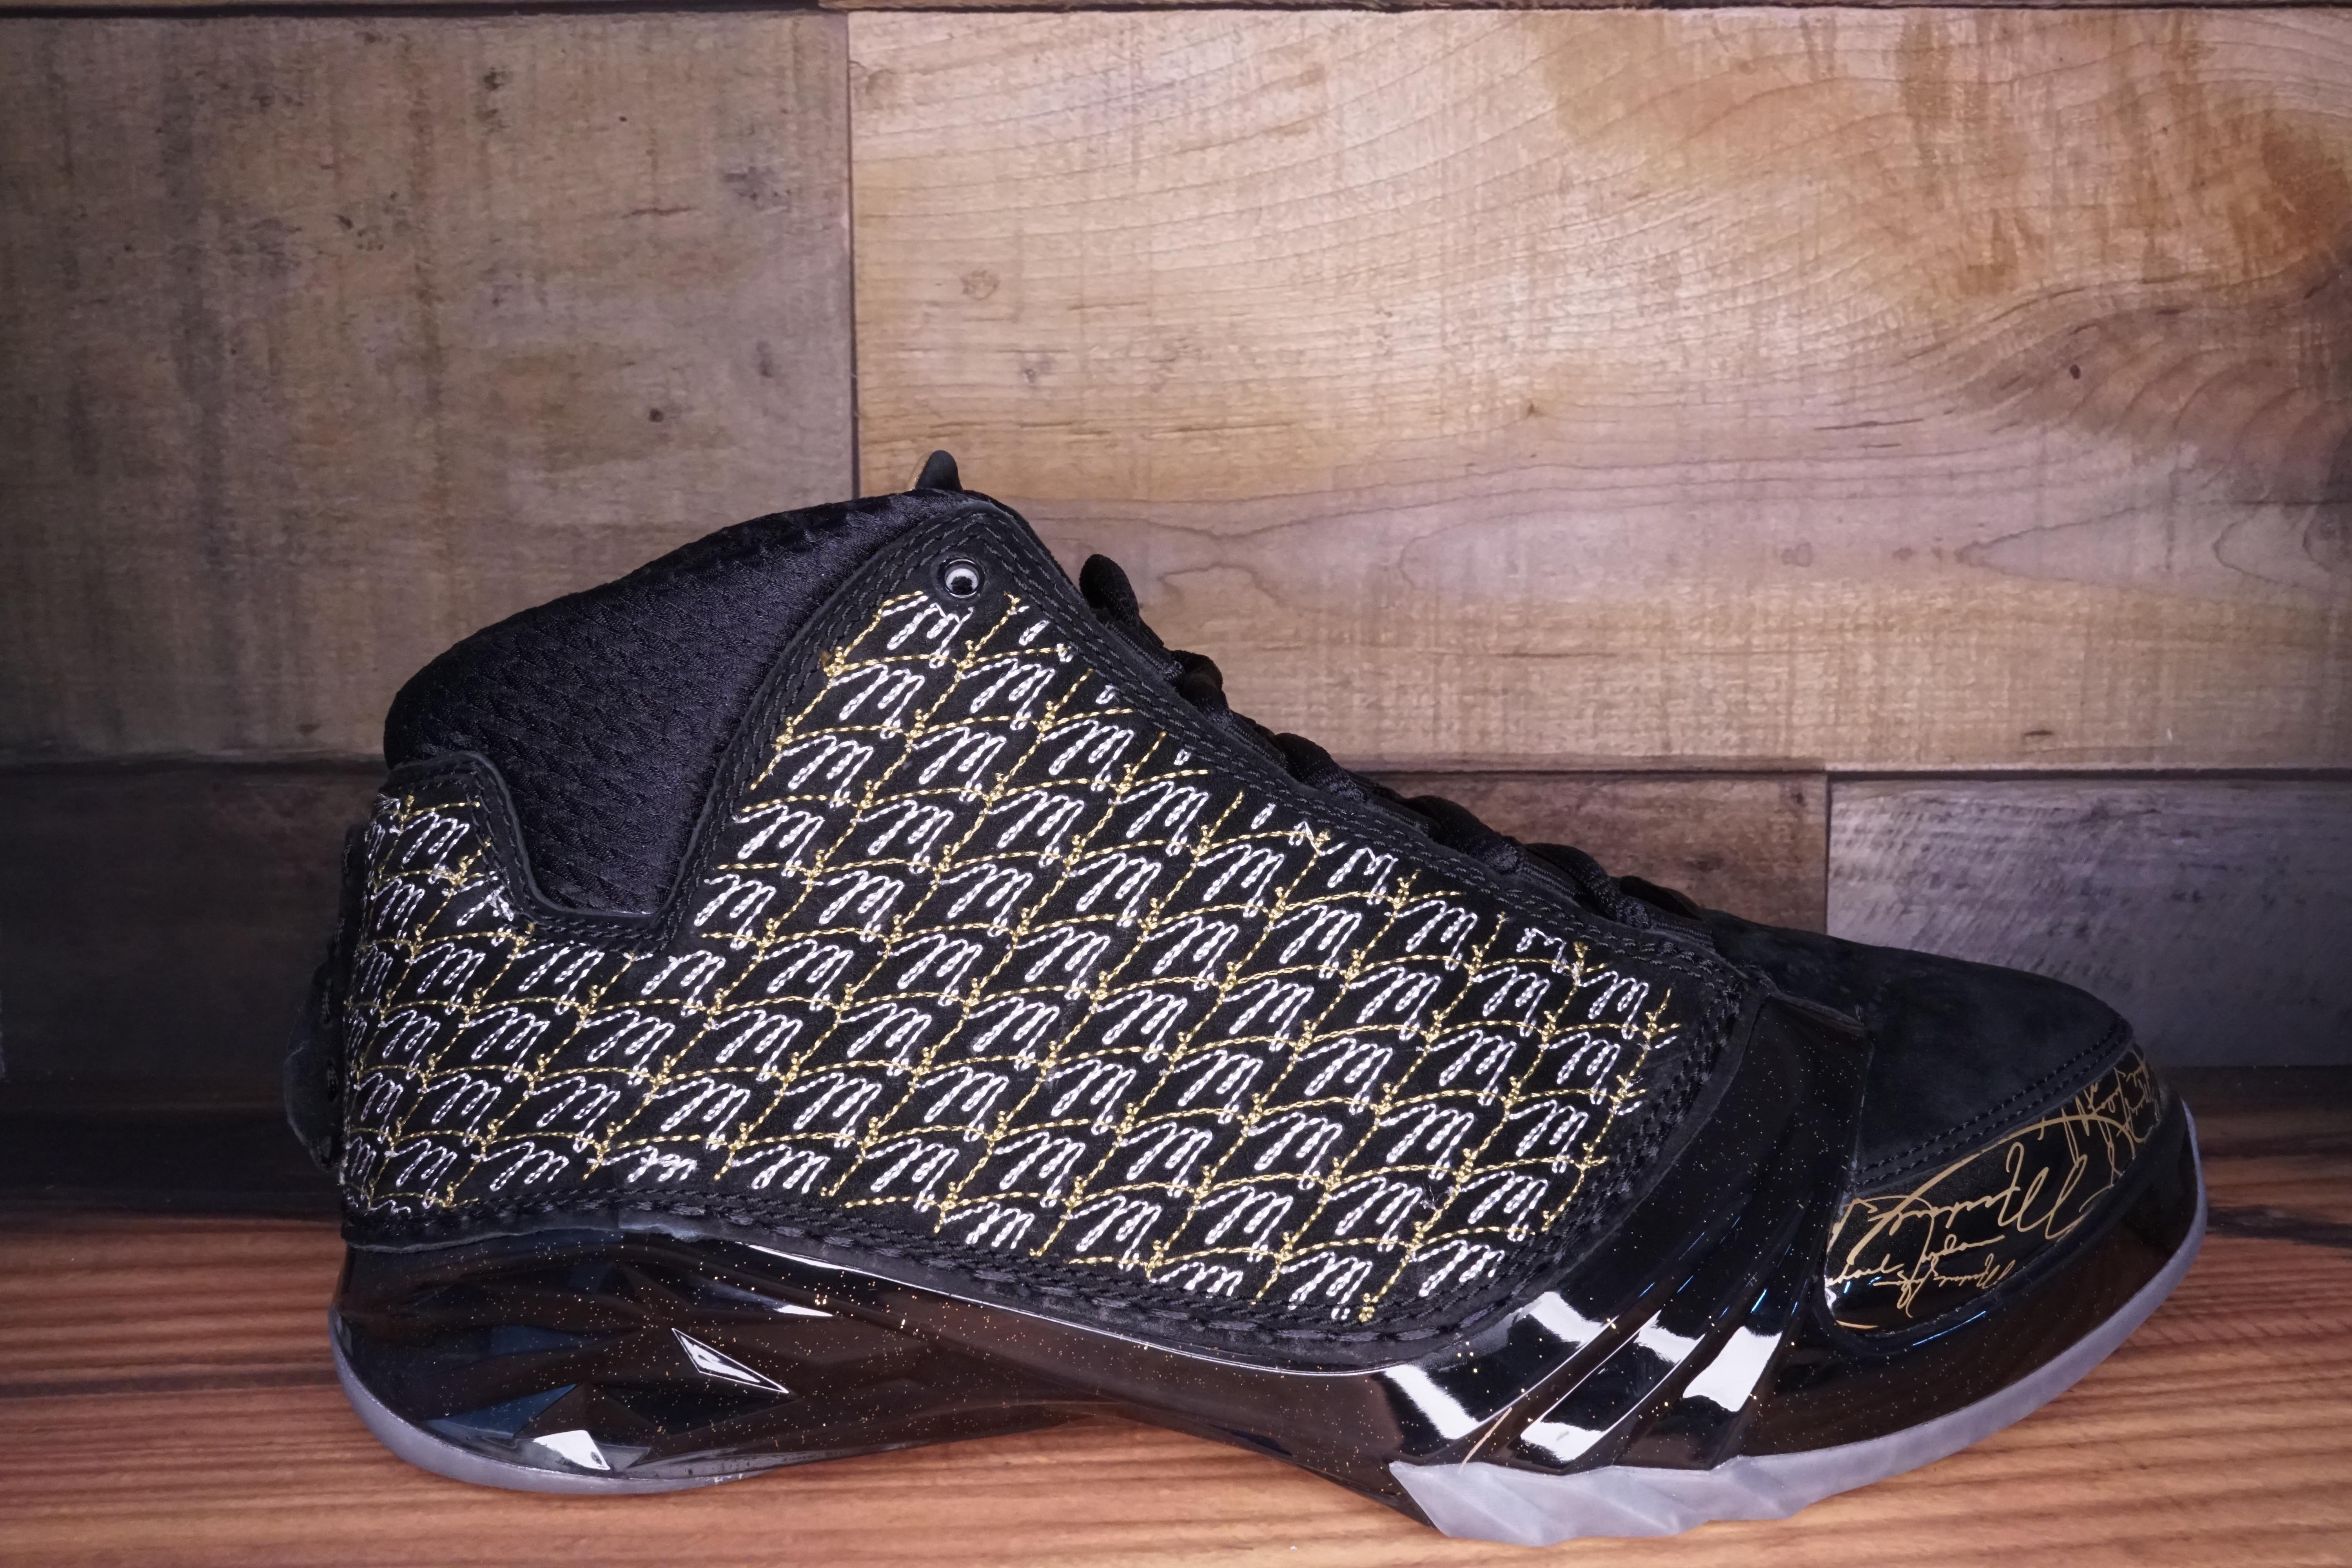 Air-Jordan-XX3-TROPHY-ROOM-Size-9.5-New-with-Original-Box_3096A.jpg